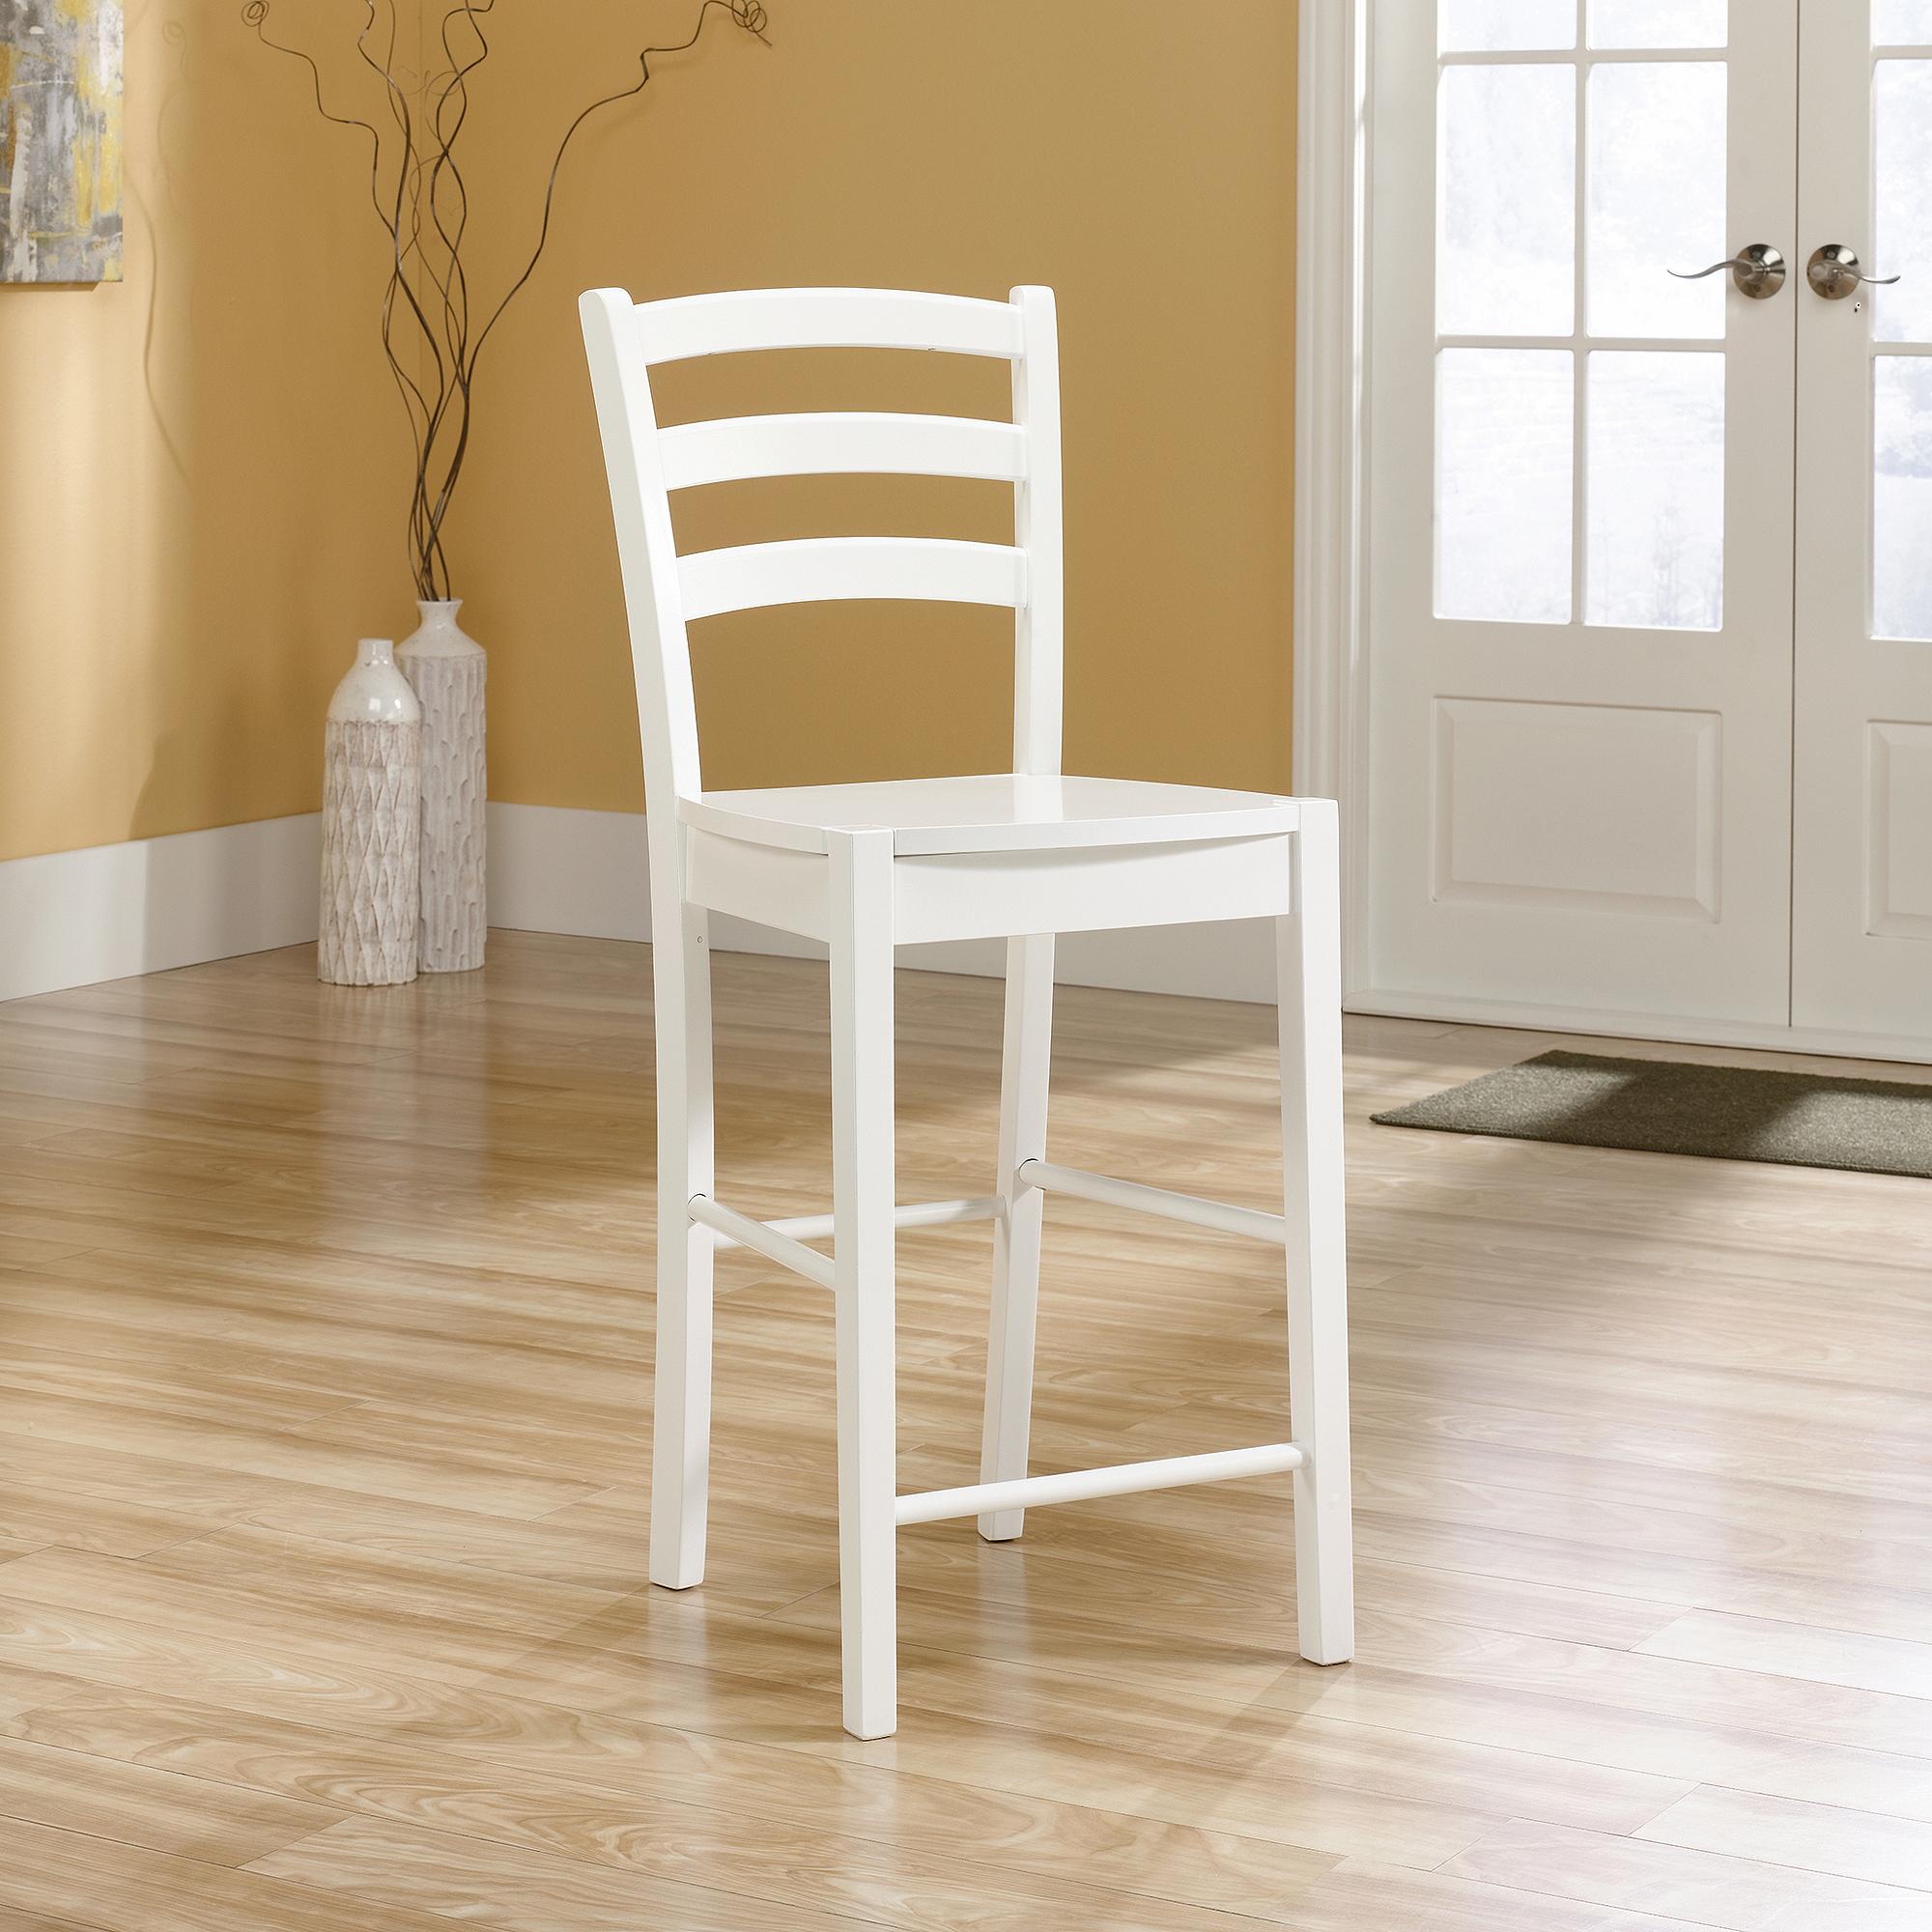 Sauder Woodworking Original Cottage Counter Height Ladder Back Dining Chair    Walmart.com